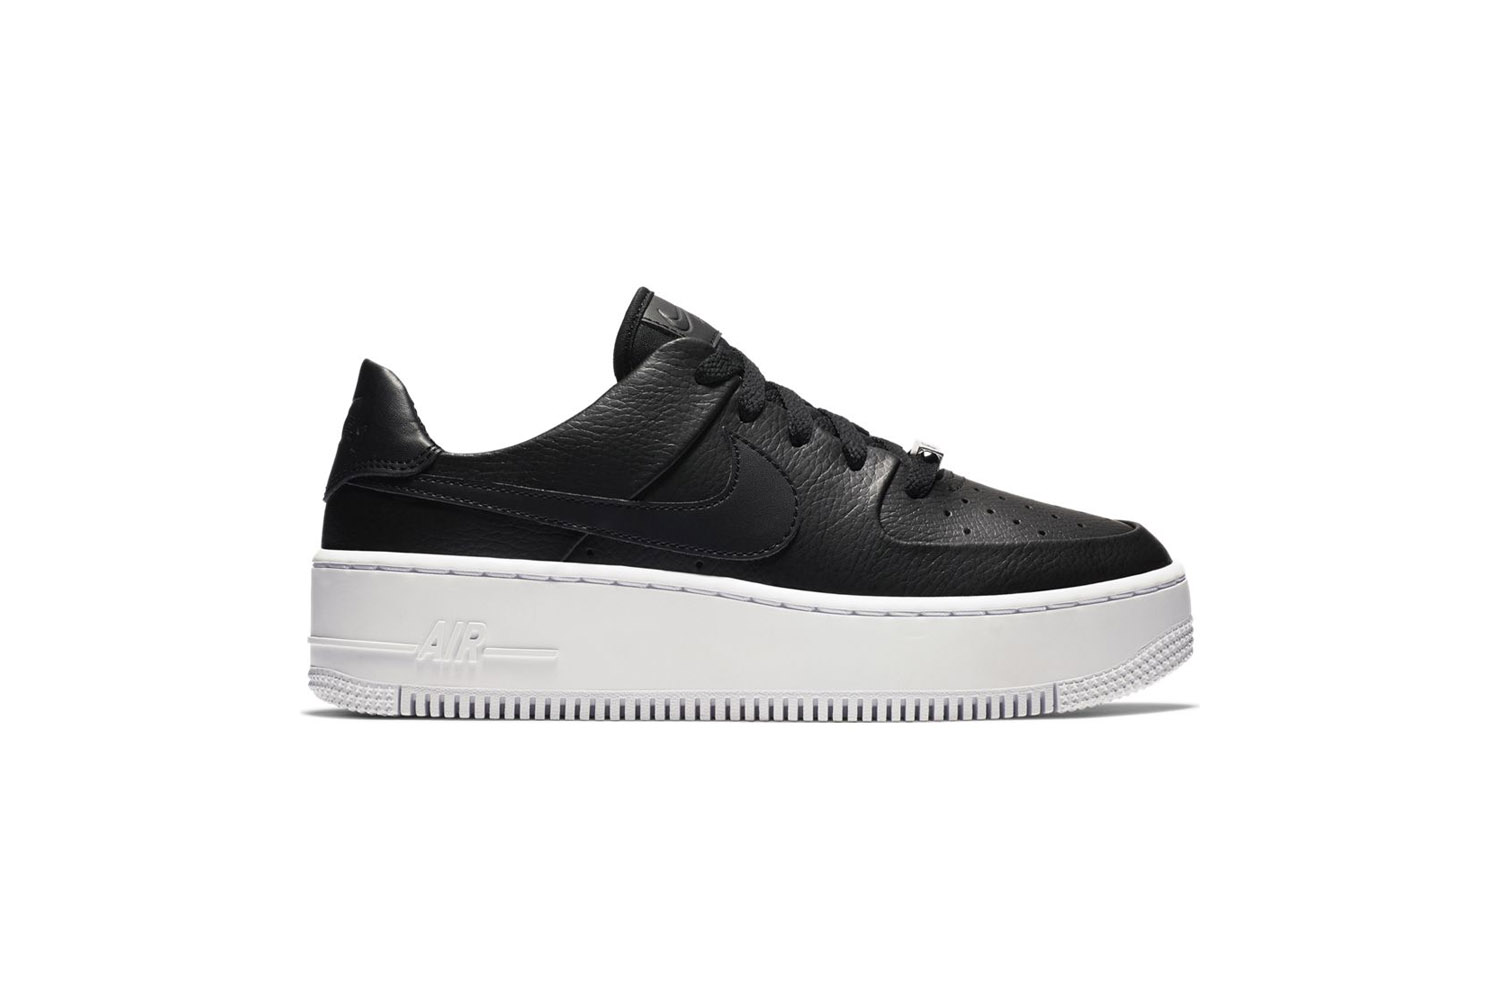 reputable site 9a5ba f974b Nike Air Force 1 Sage Low Donna - NIKE AS - Anaclerico Sport